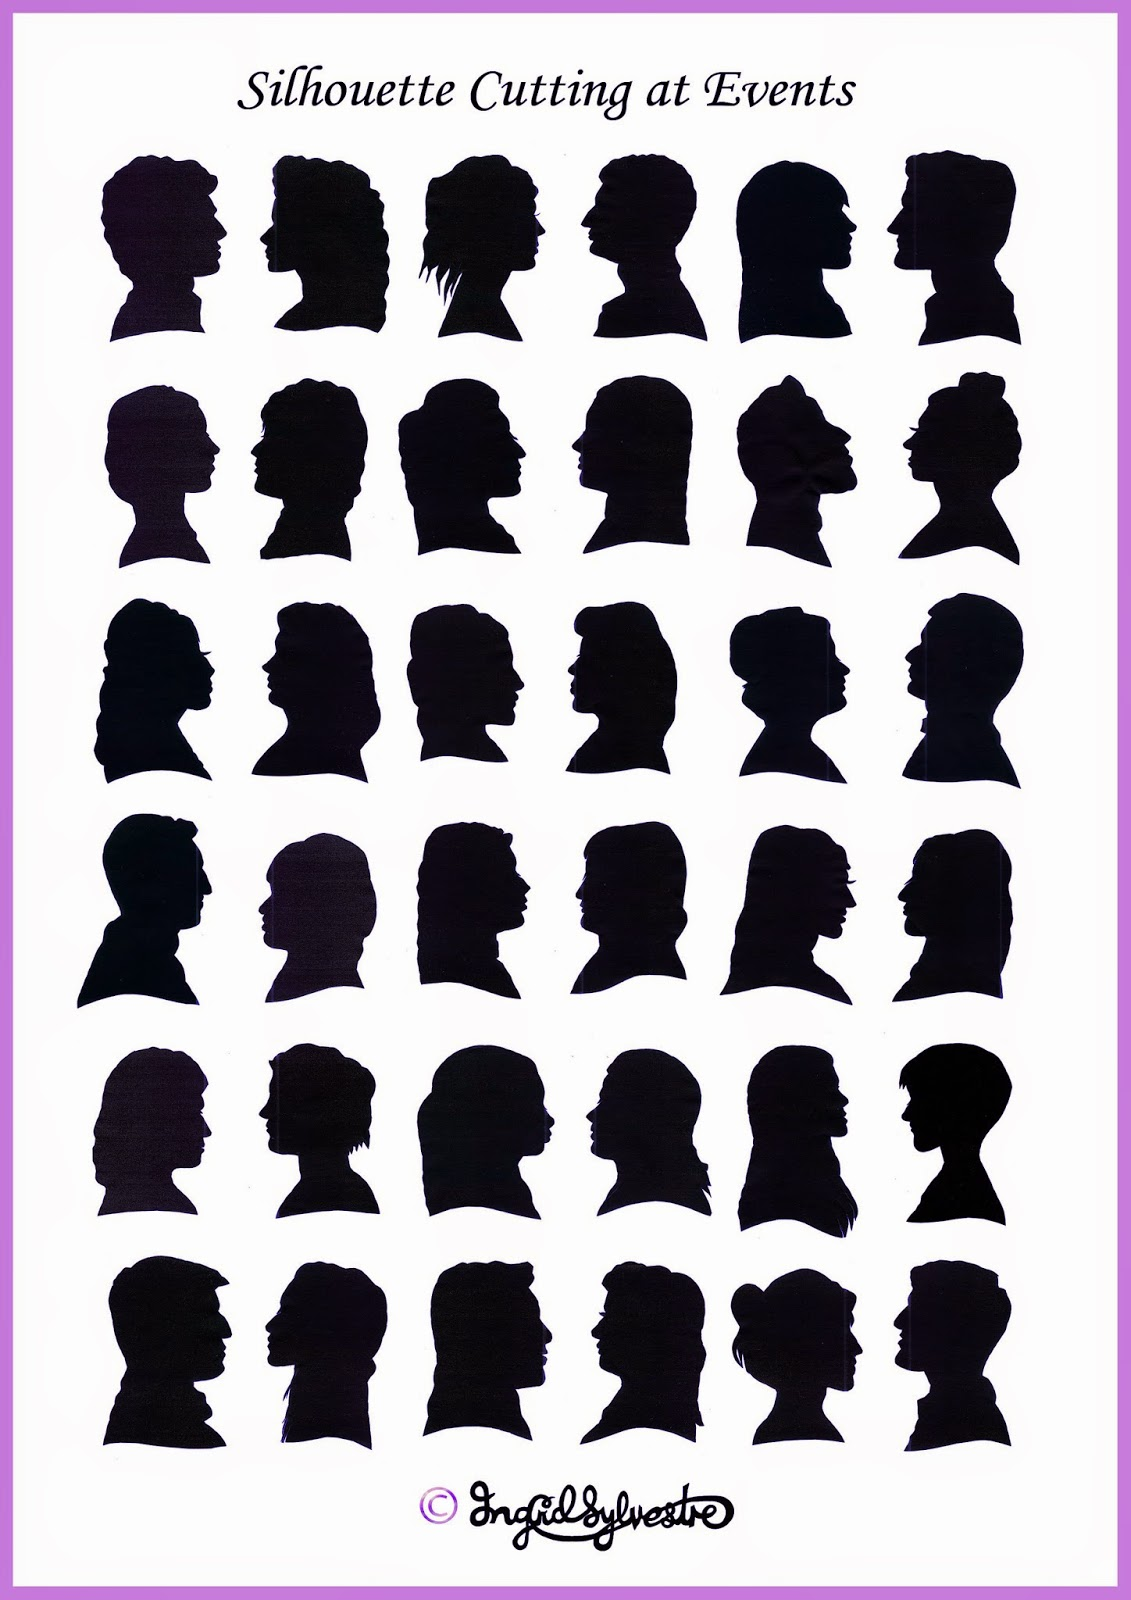 UK Silhouette artist Ingrid Sylvestre - wedding entertainment North East -hand cut silhouettes at weddings, parties, proms, corporate events Fun Wedding ideas. Wedding Day Entertainment Ideas. Unique ideas for Wedding Reception Entertainment. Great ideas for unusual wedding day entertainment. Wedding event ideas for entertainment during reception. Unusual interesting fun Wedding planning ideas.